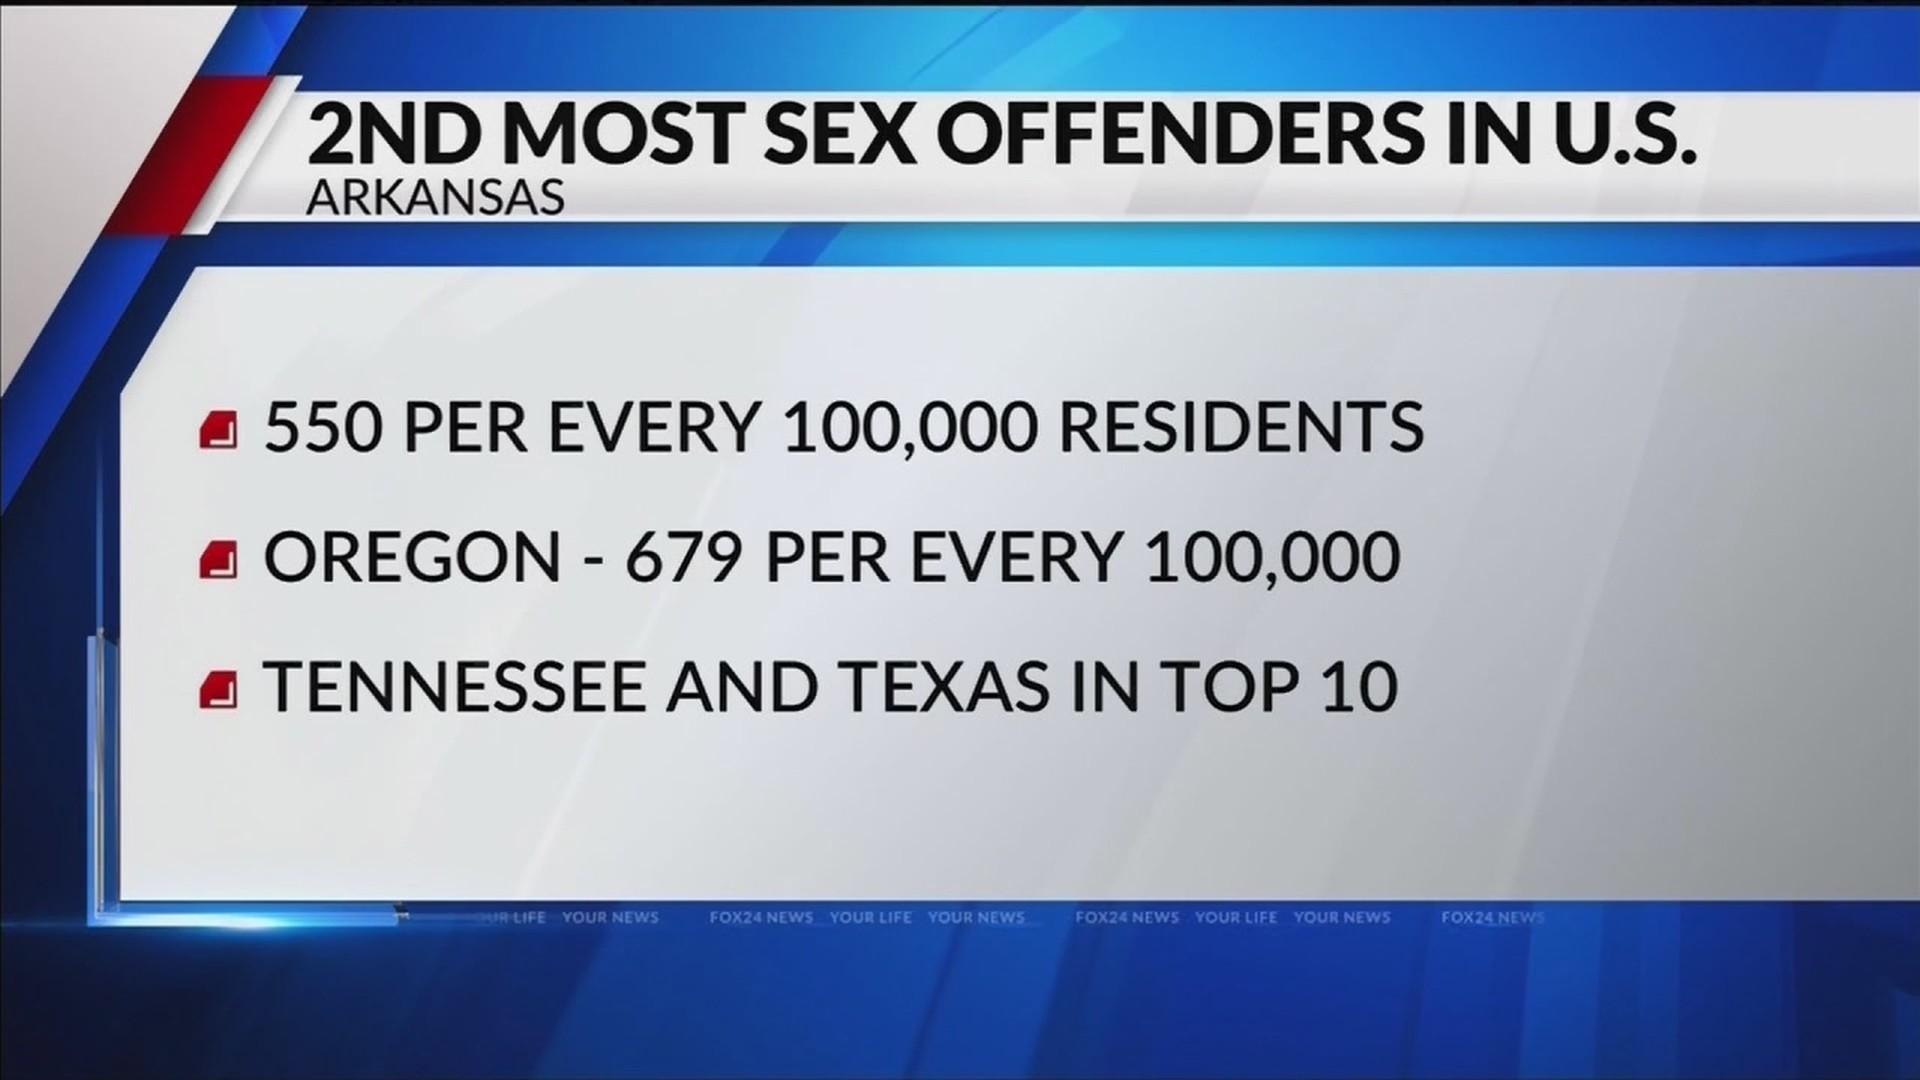 Arkansas_Has_2nd_Most_Registered_Sex_Off_0_20180831115330